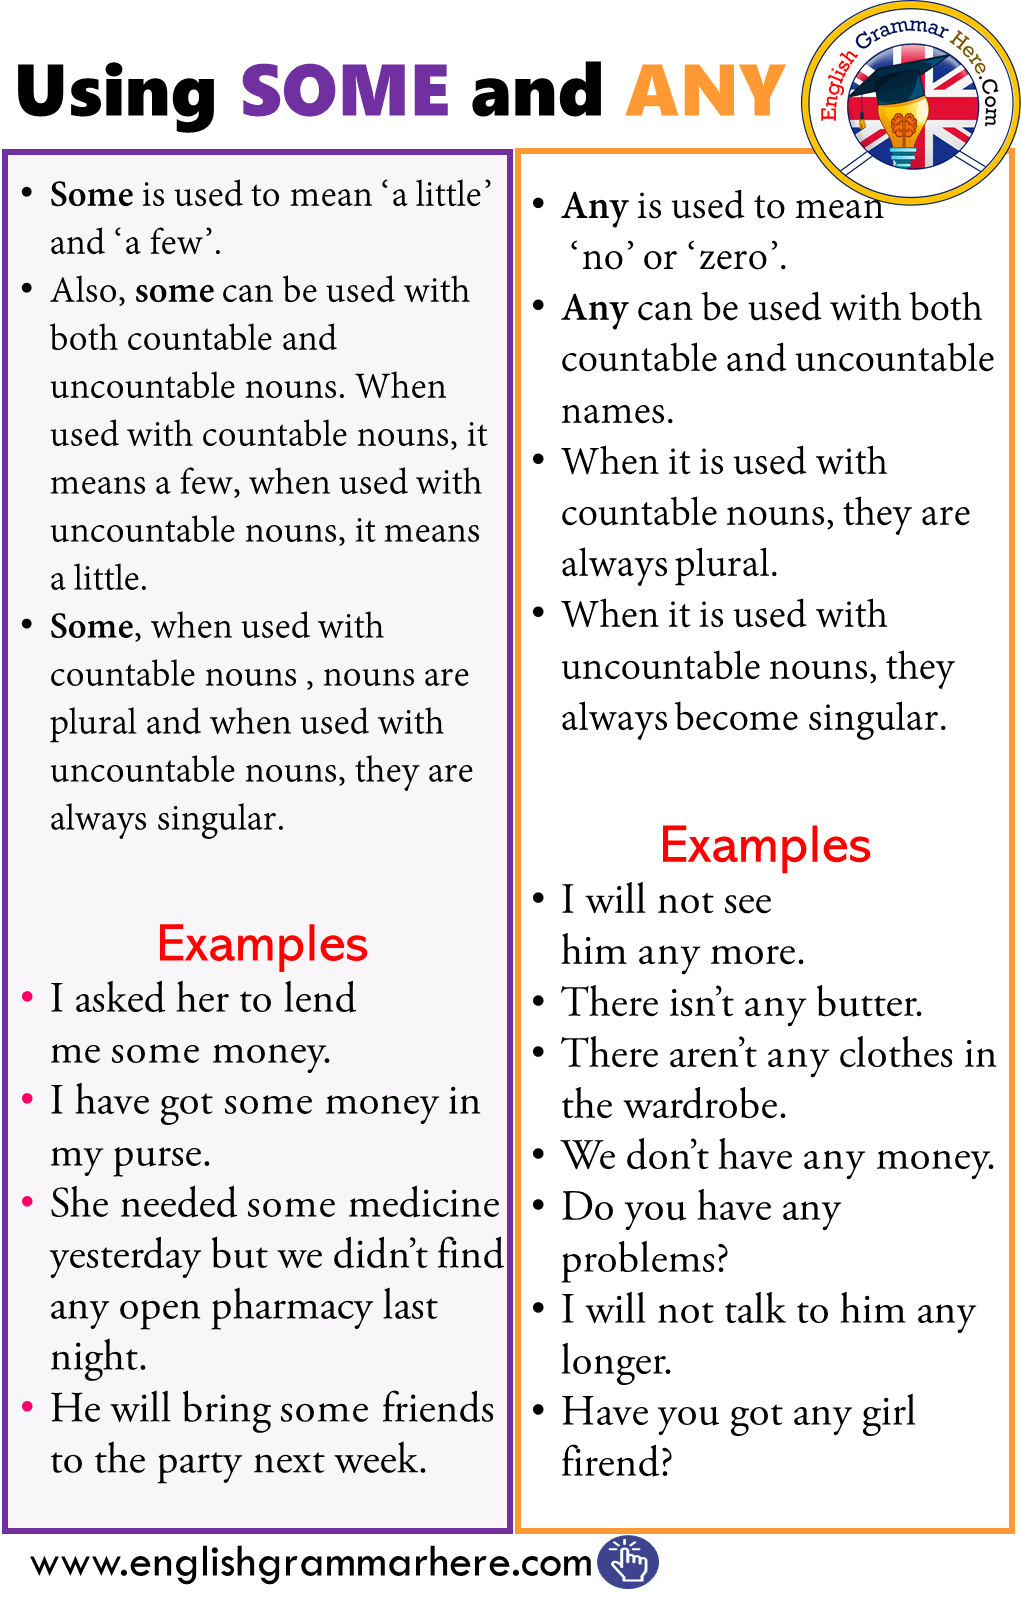 Using SOME and ANY in English